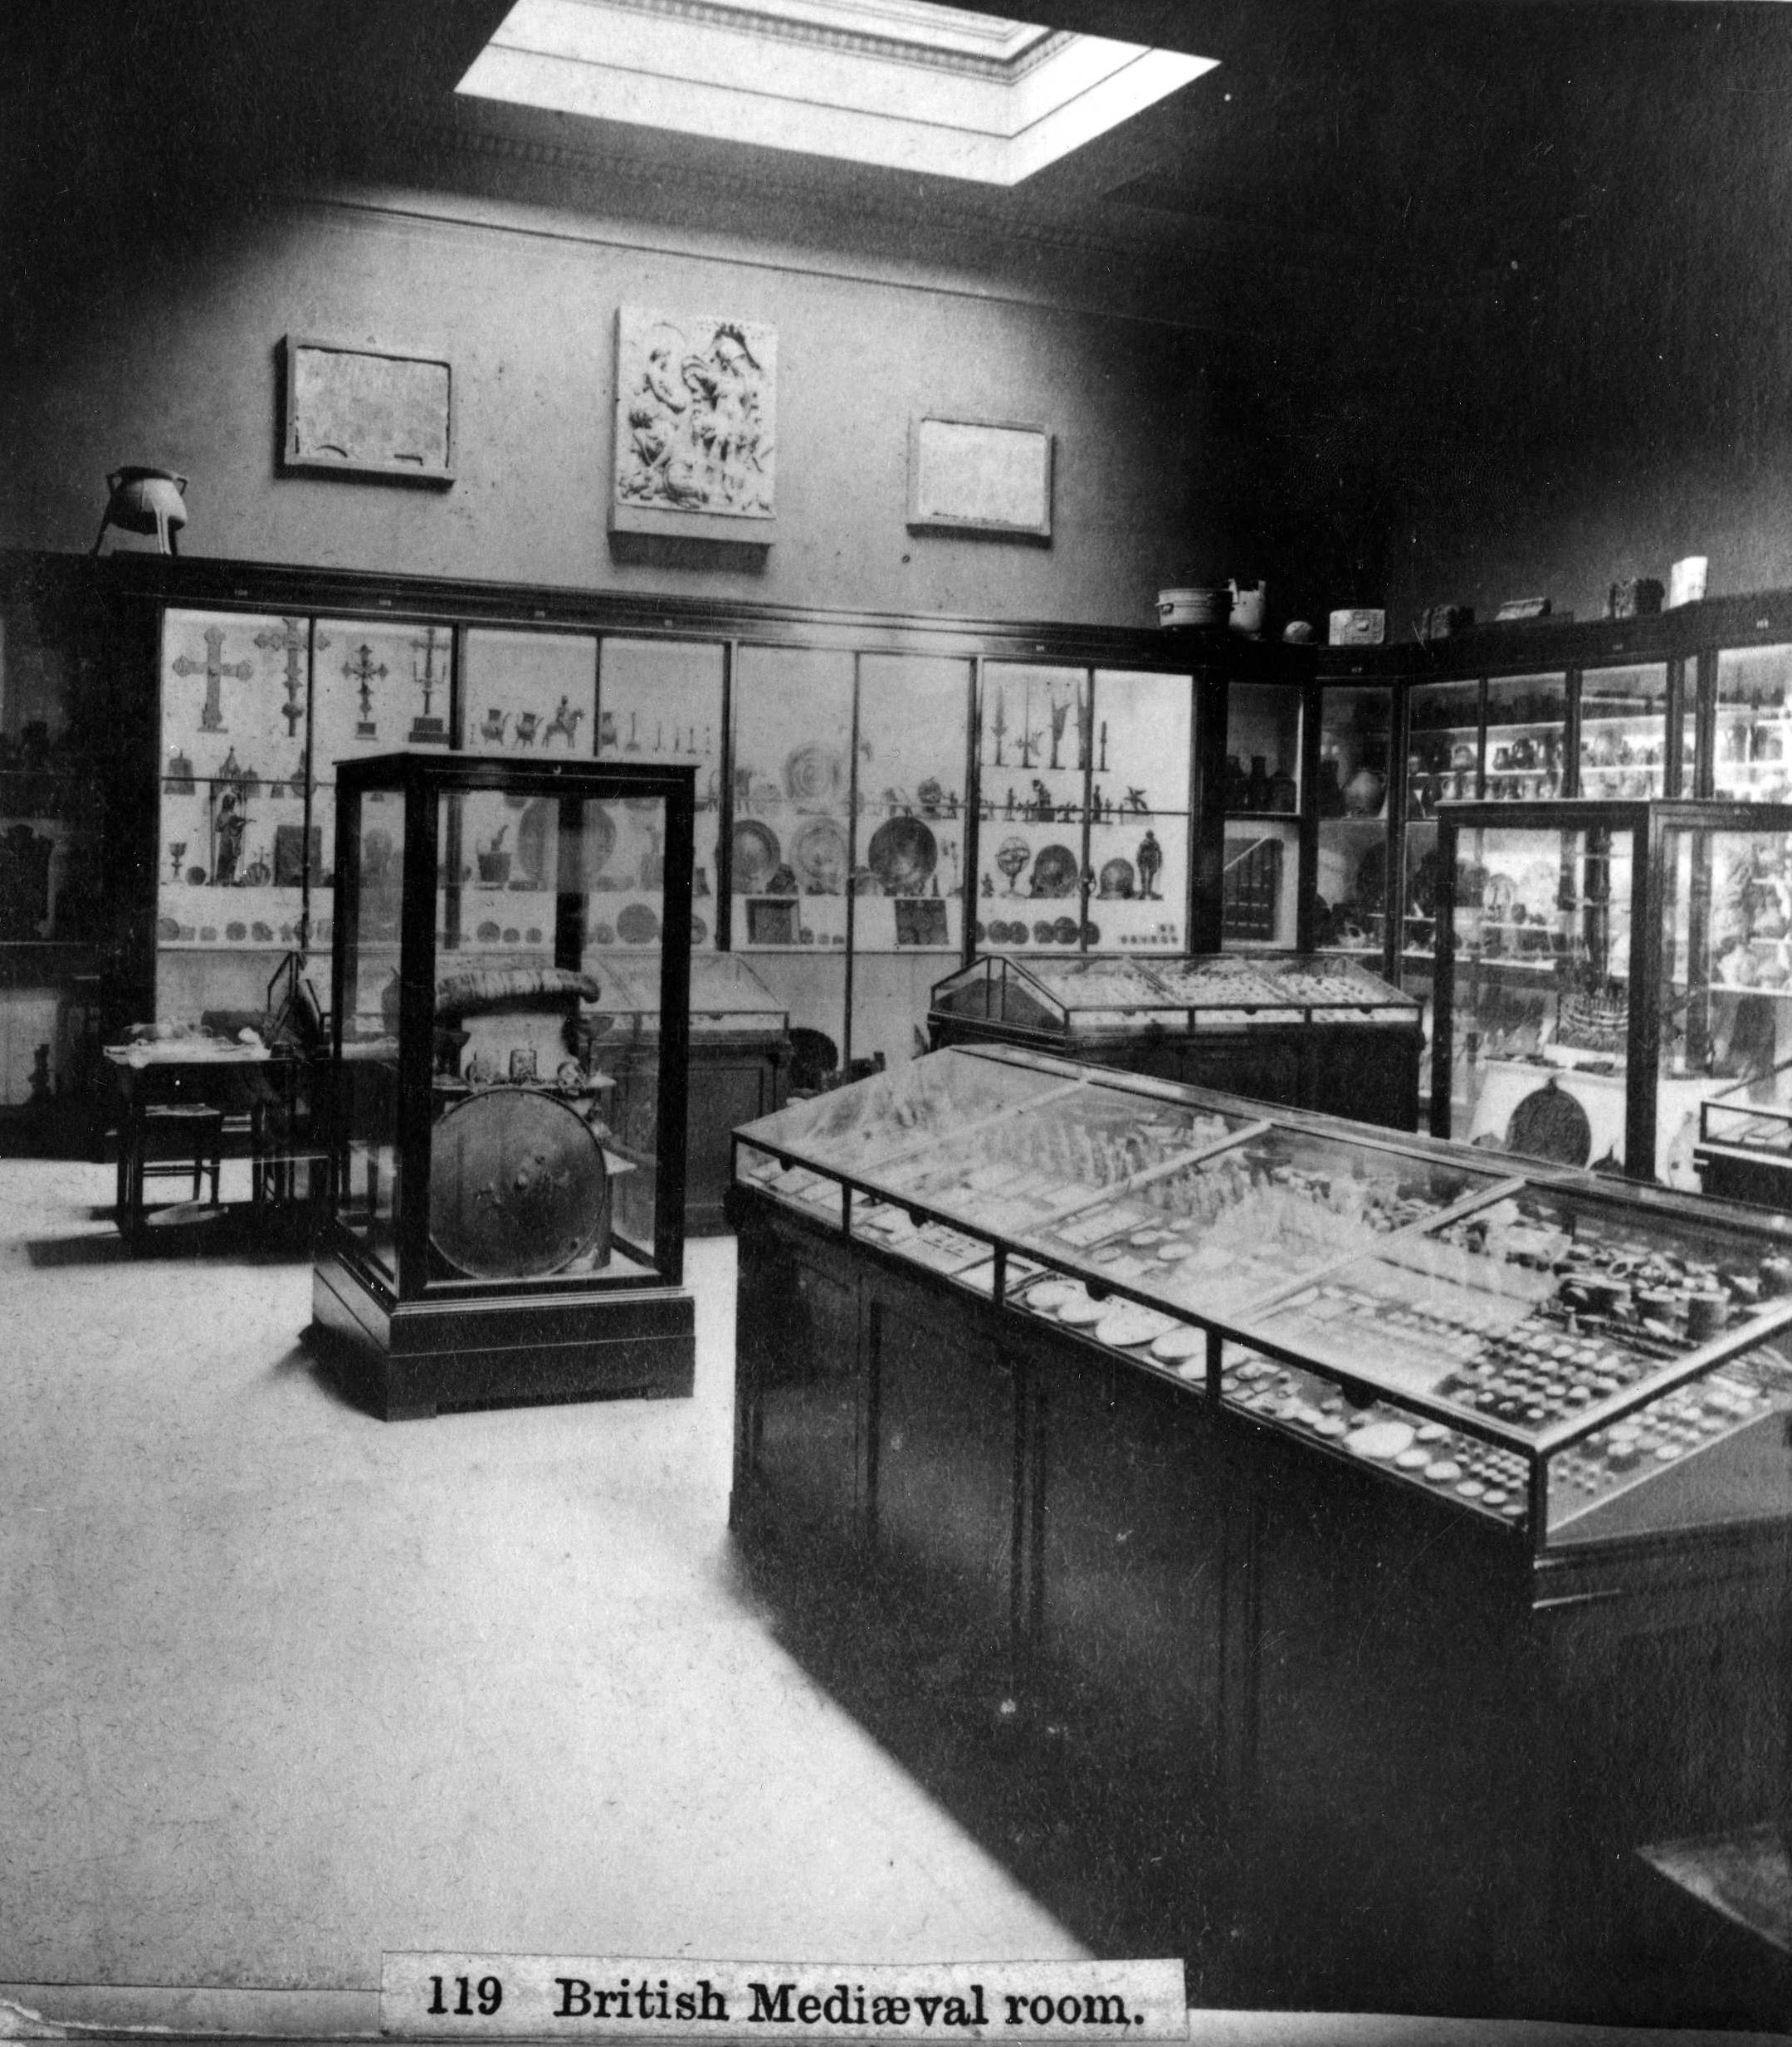 Black and white photograph of the Museum's Medieval room in 1875, showing a display case in the centre of the room containing the Lewis Chessmen.